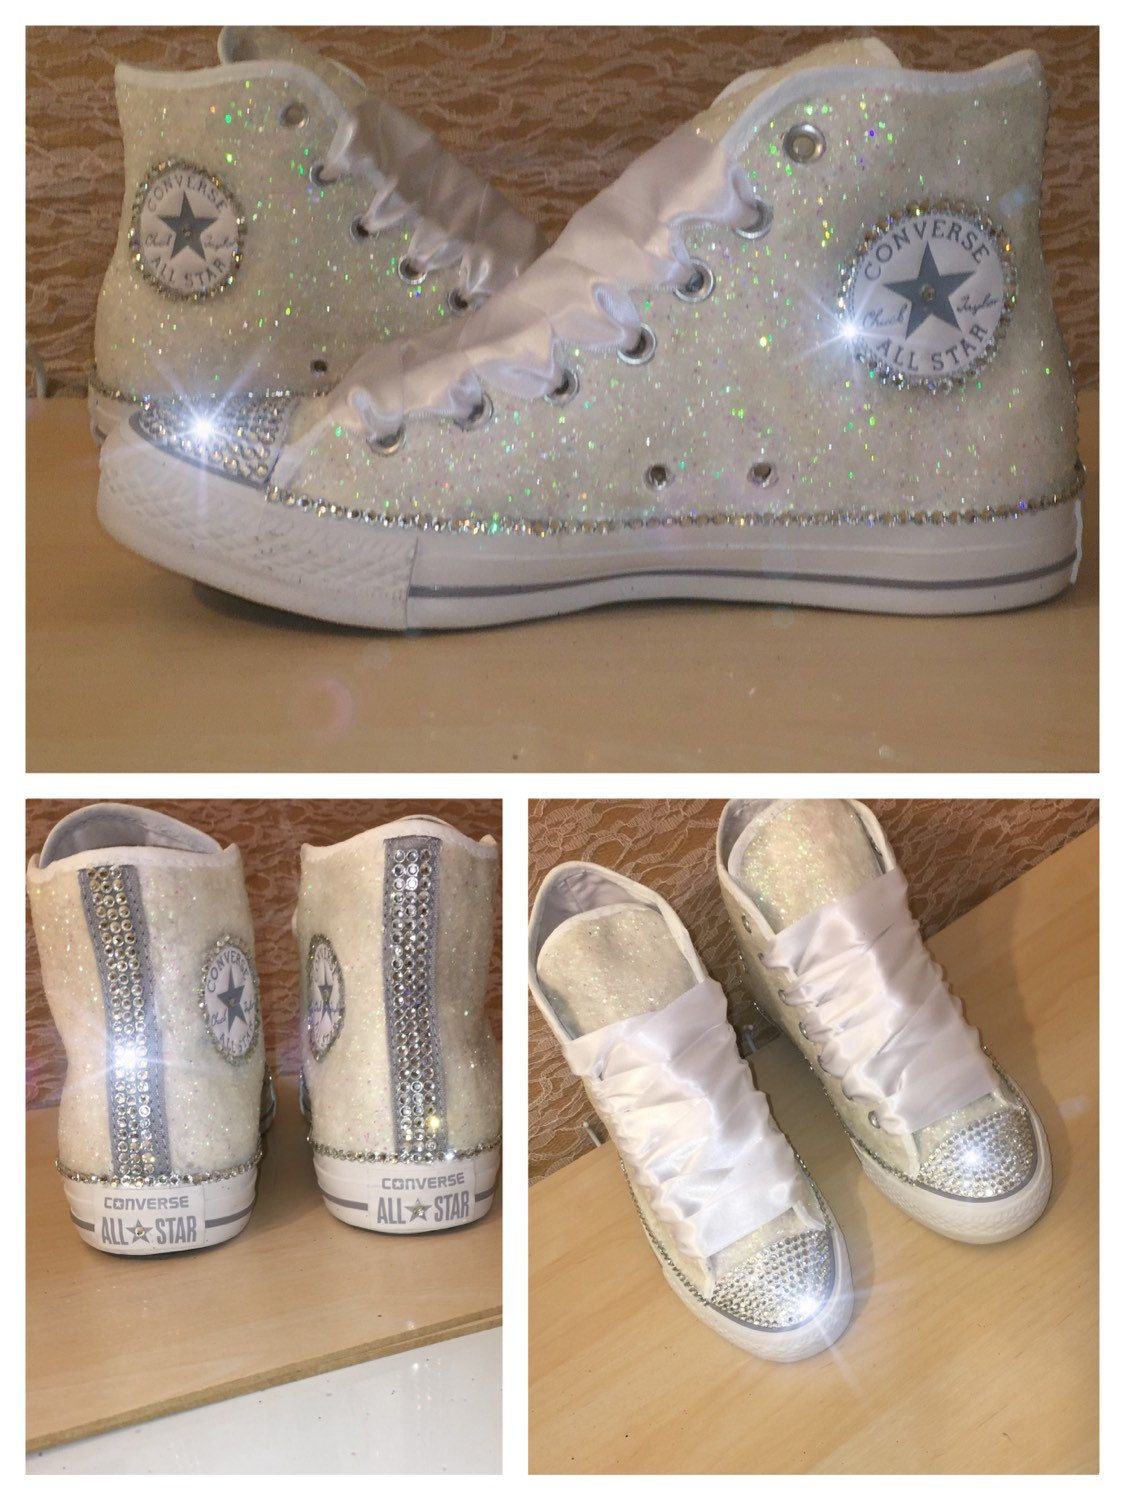 10 OFF code  PINNED10 Women s WHITE or IVORY sparkly Glitter crystals  ribbon lace high top or wedge heels CONVERSE all stars tennis shoes wedding  bride ... e95e4e9be